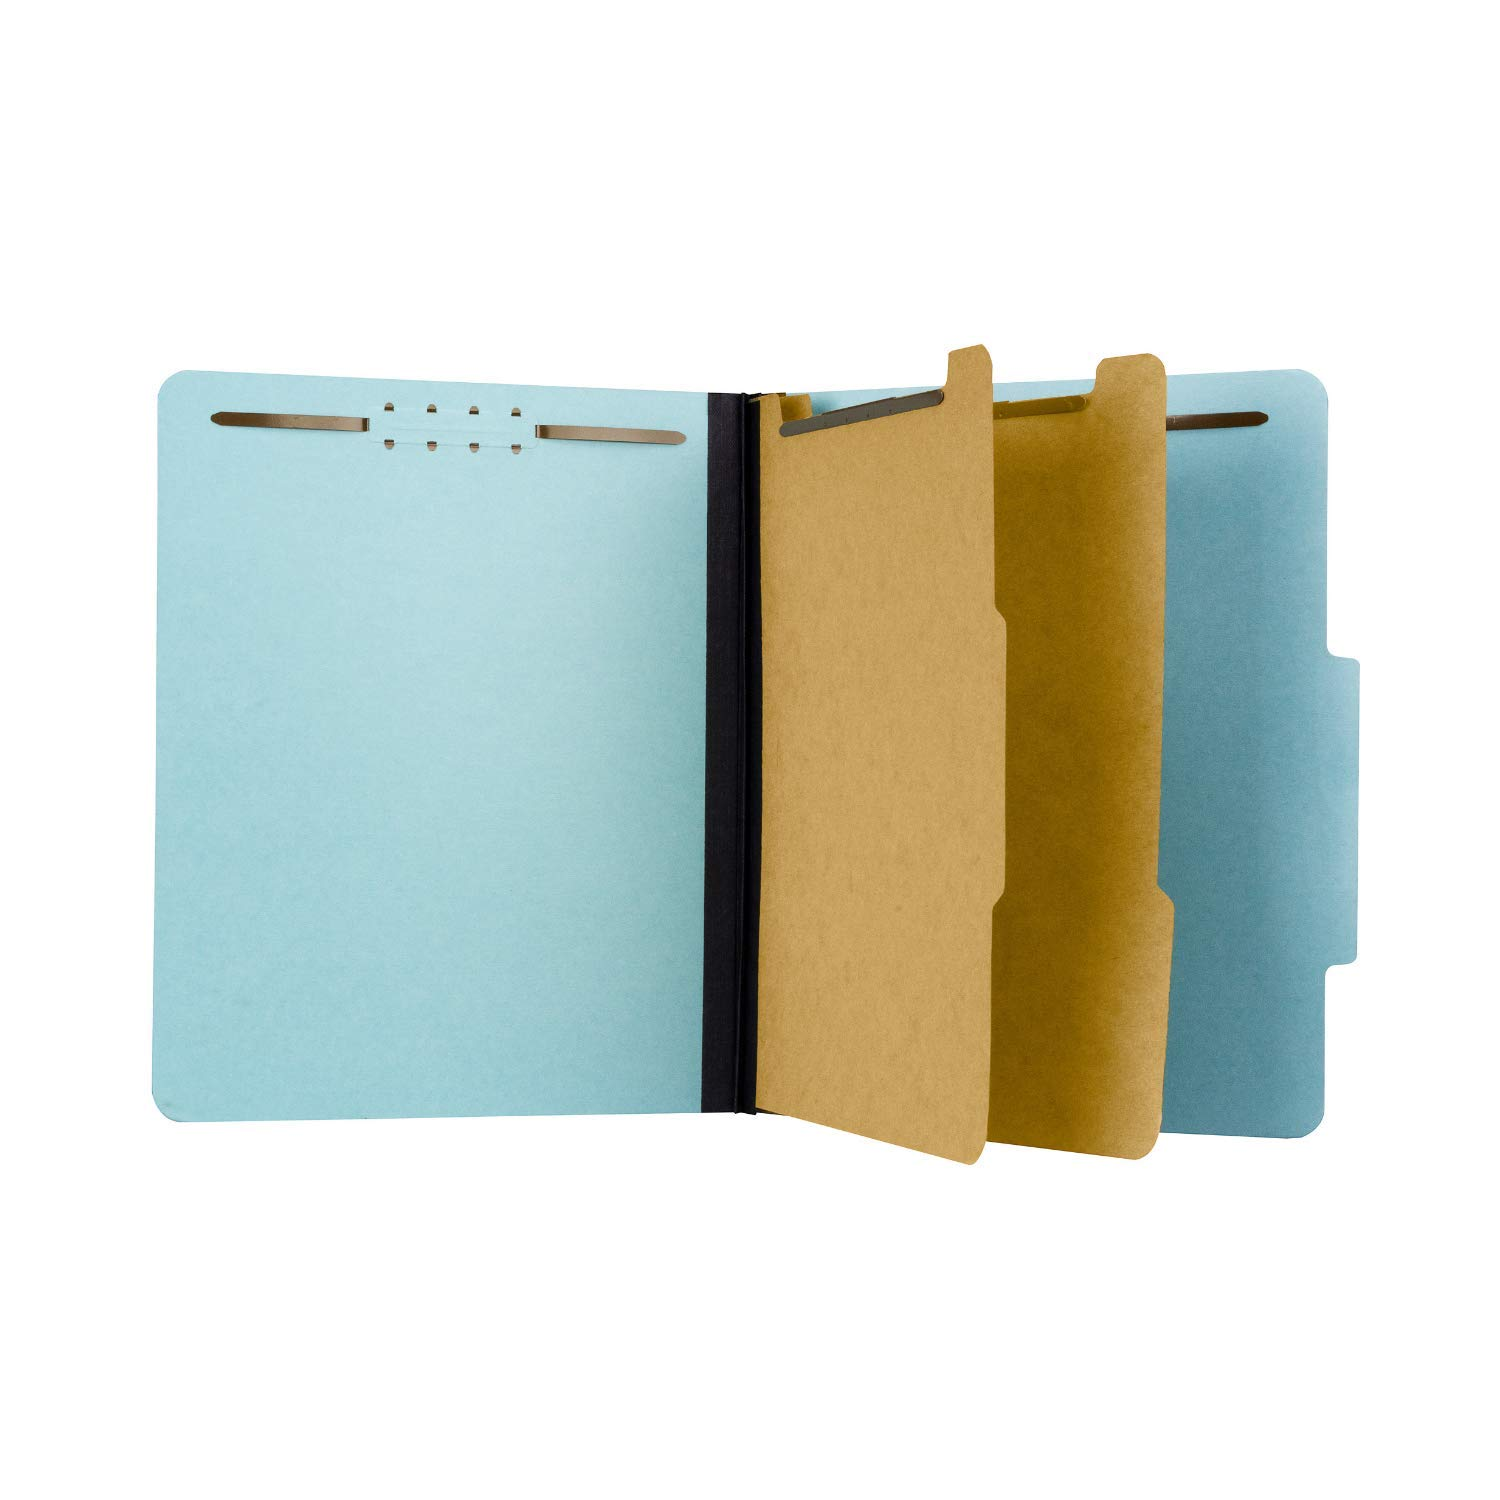 Pressboard Classification File Folder with 2 dividers and Fasteners, Letter Size, Blue, 2'' Expansion, Box 10 by The File King